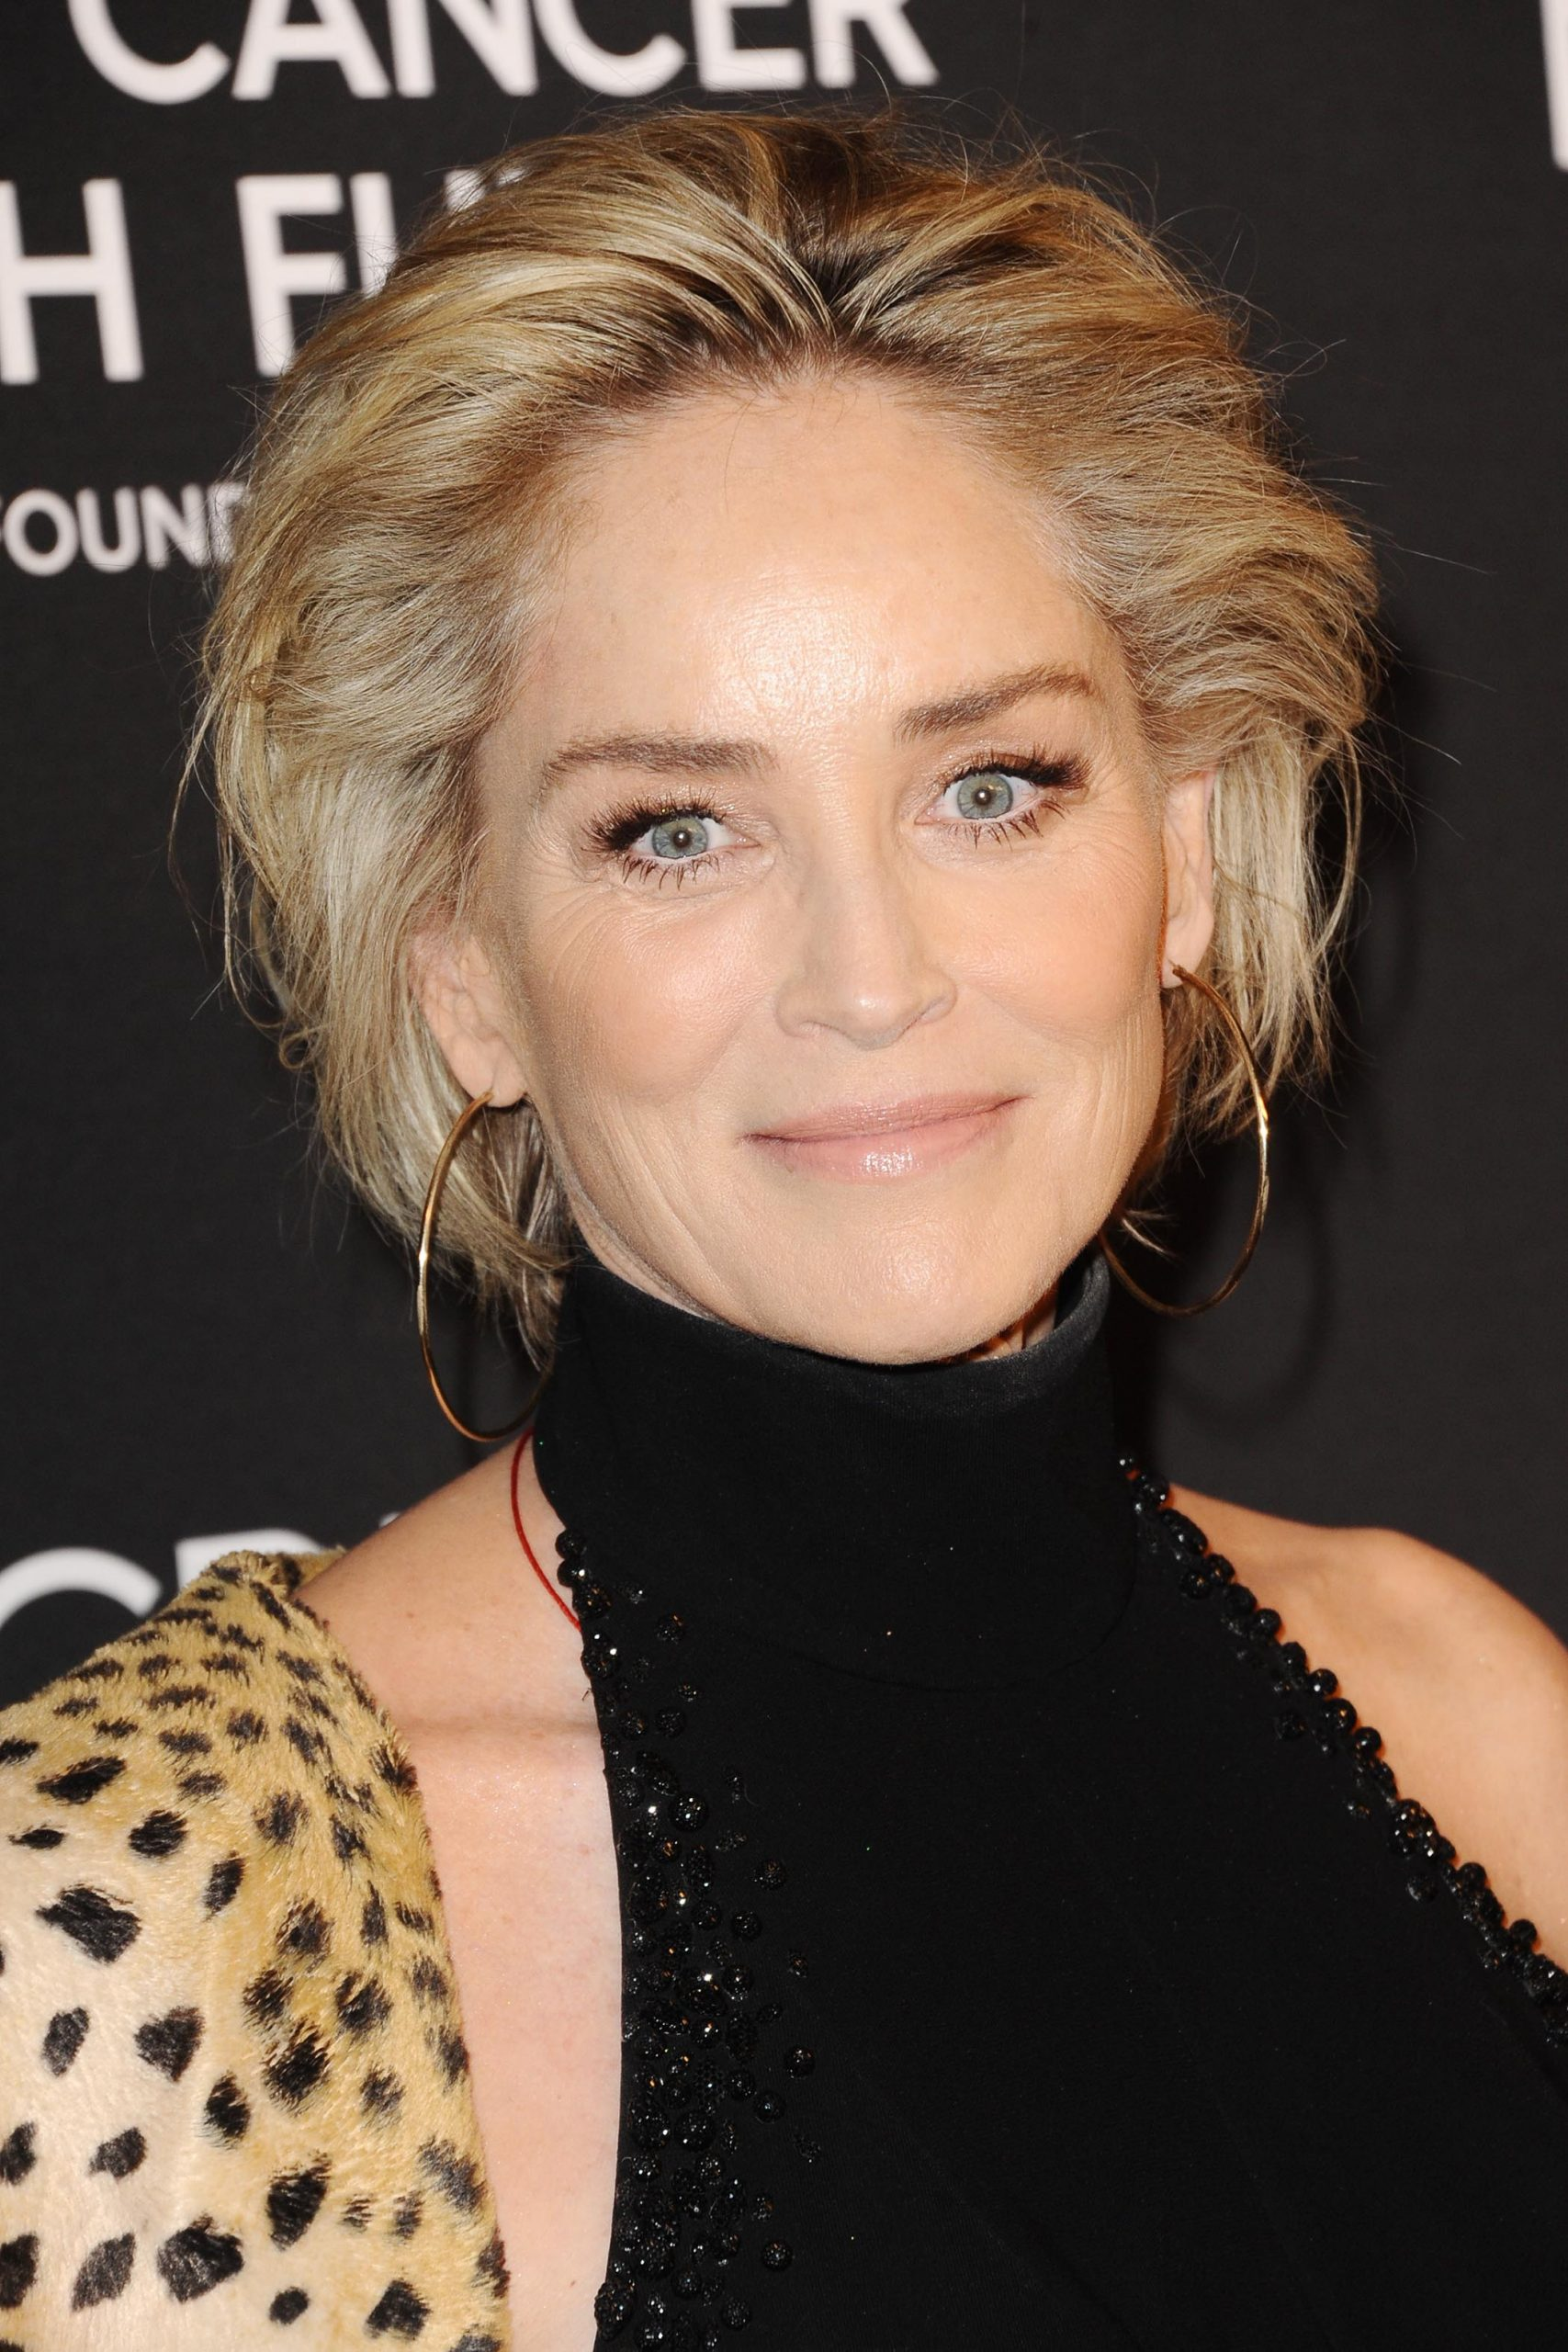 Sharon Stone Banned On Bumble- Truth or Fake?